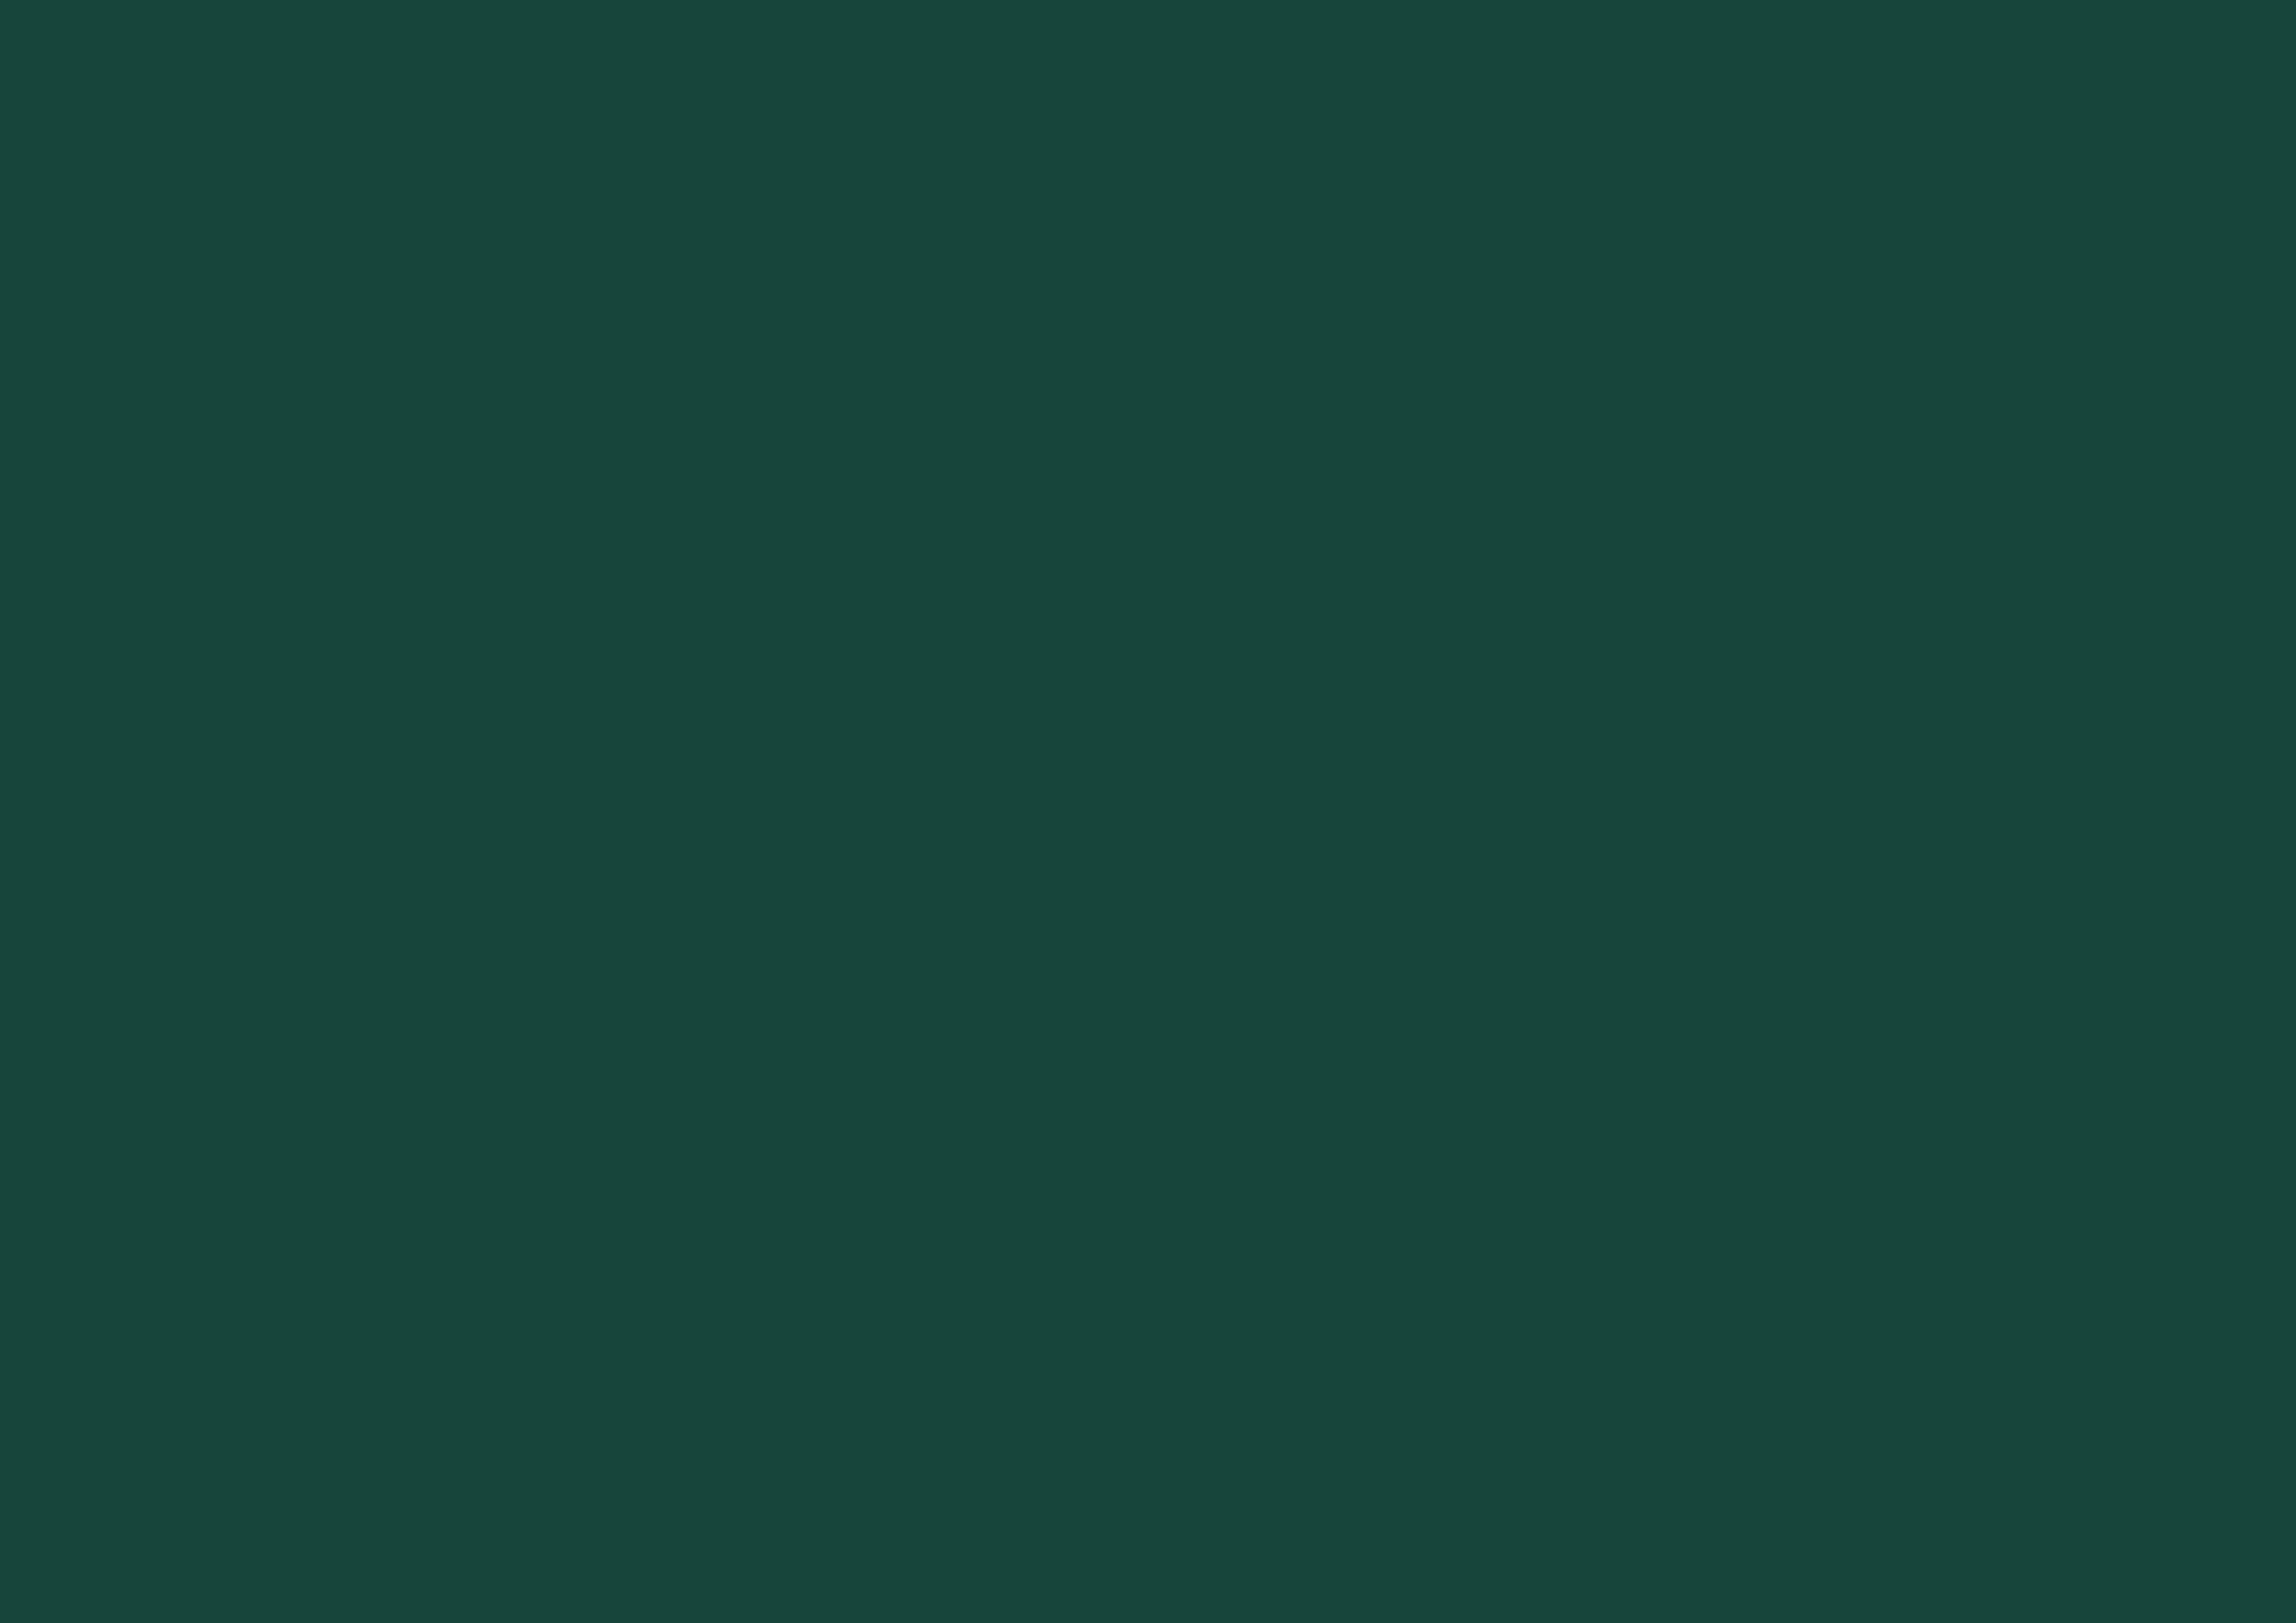 3508x2480 MSU Green Solid Color Background